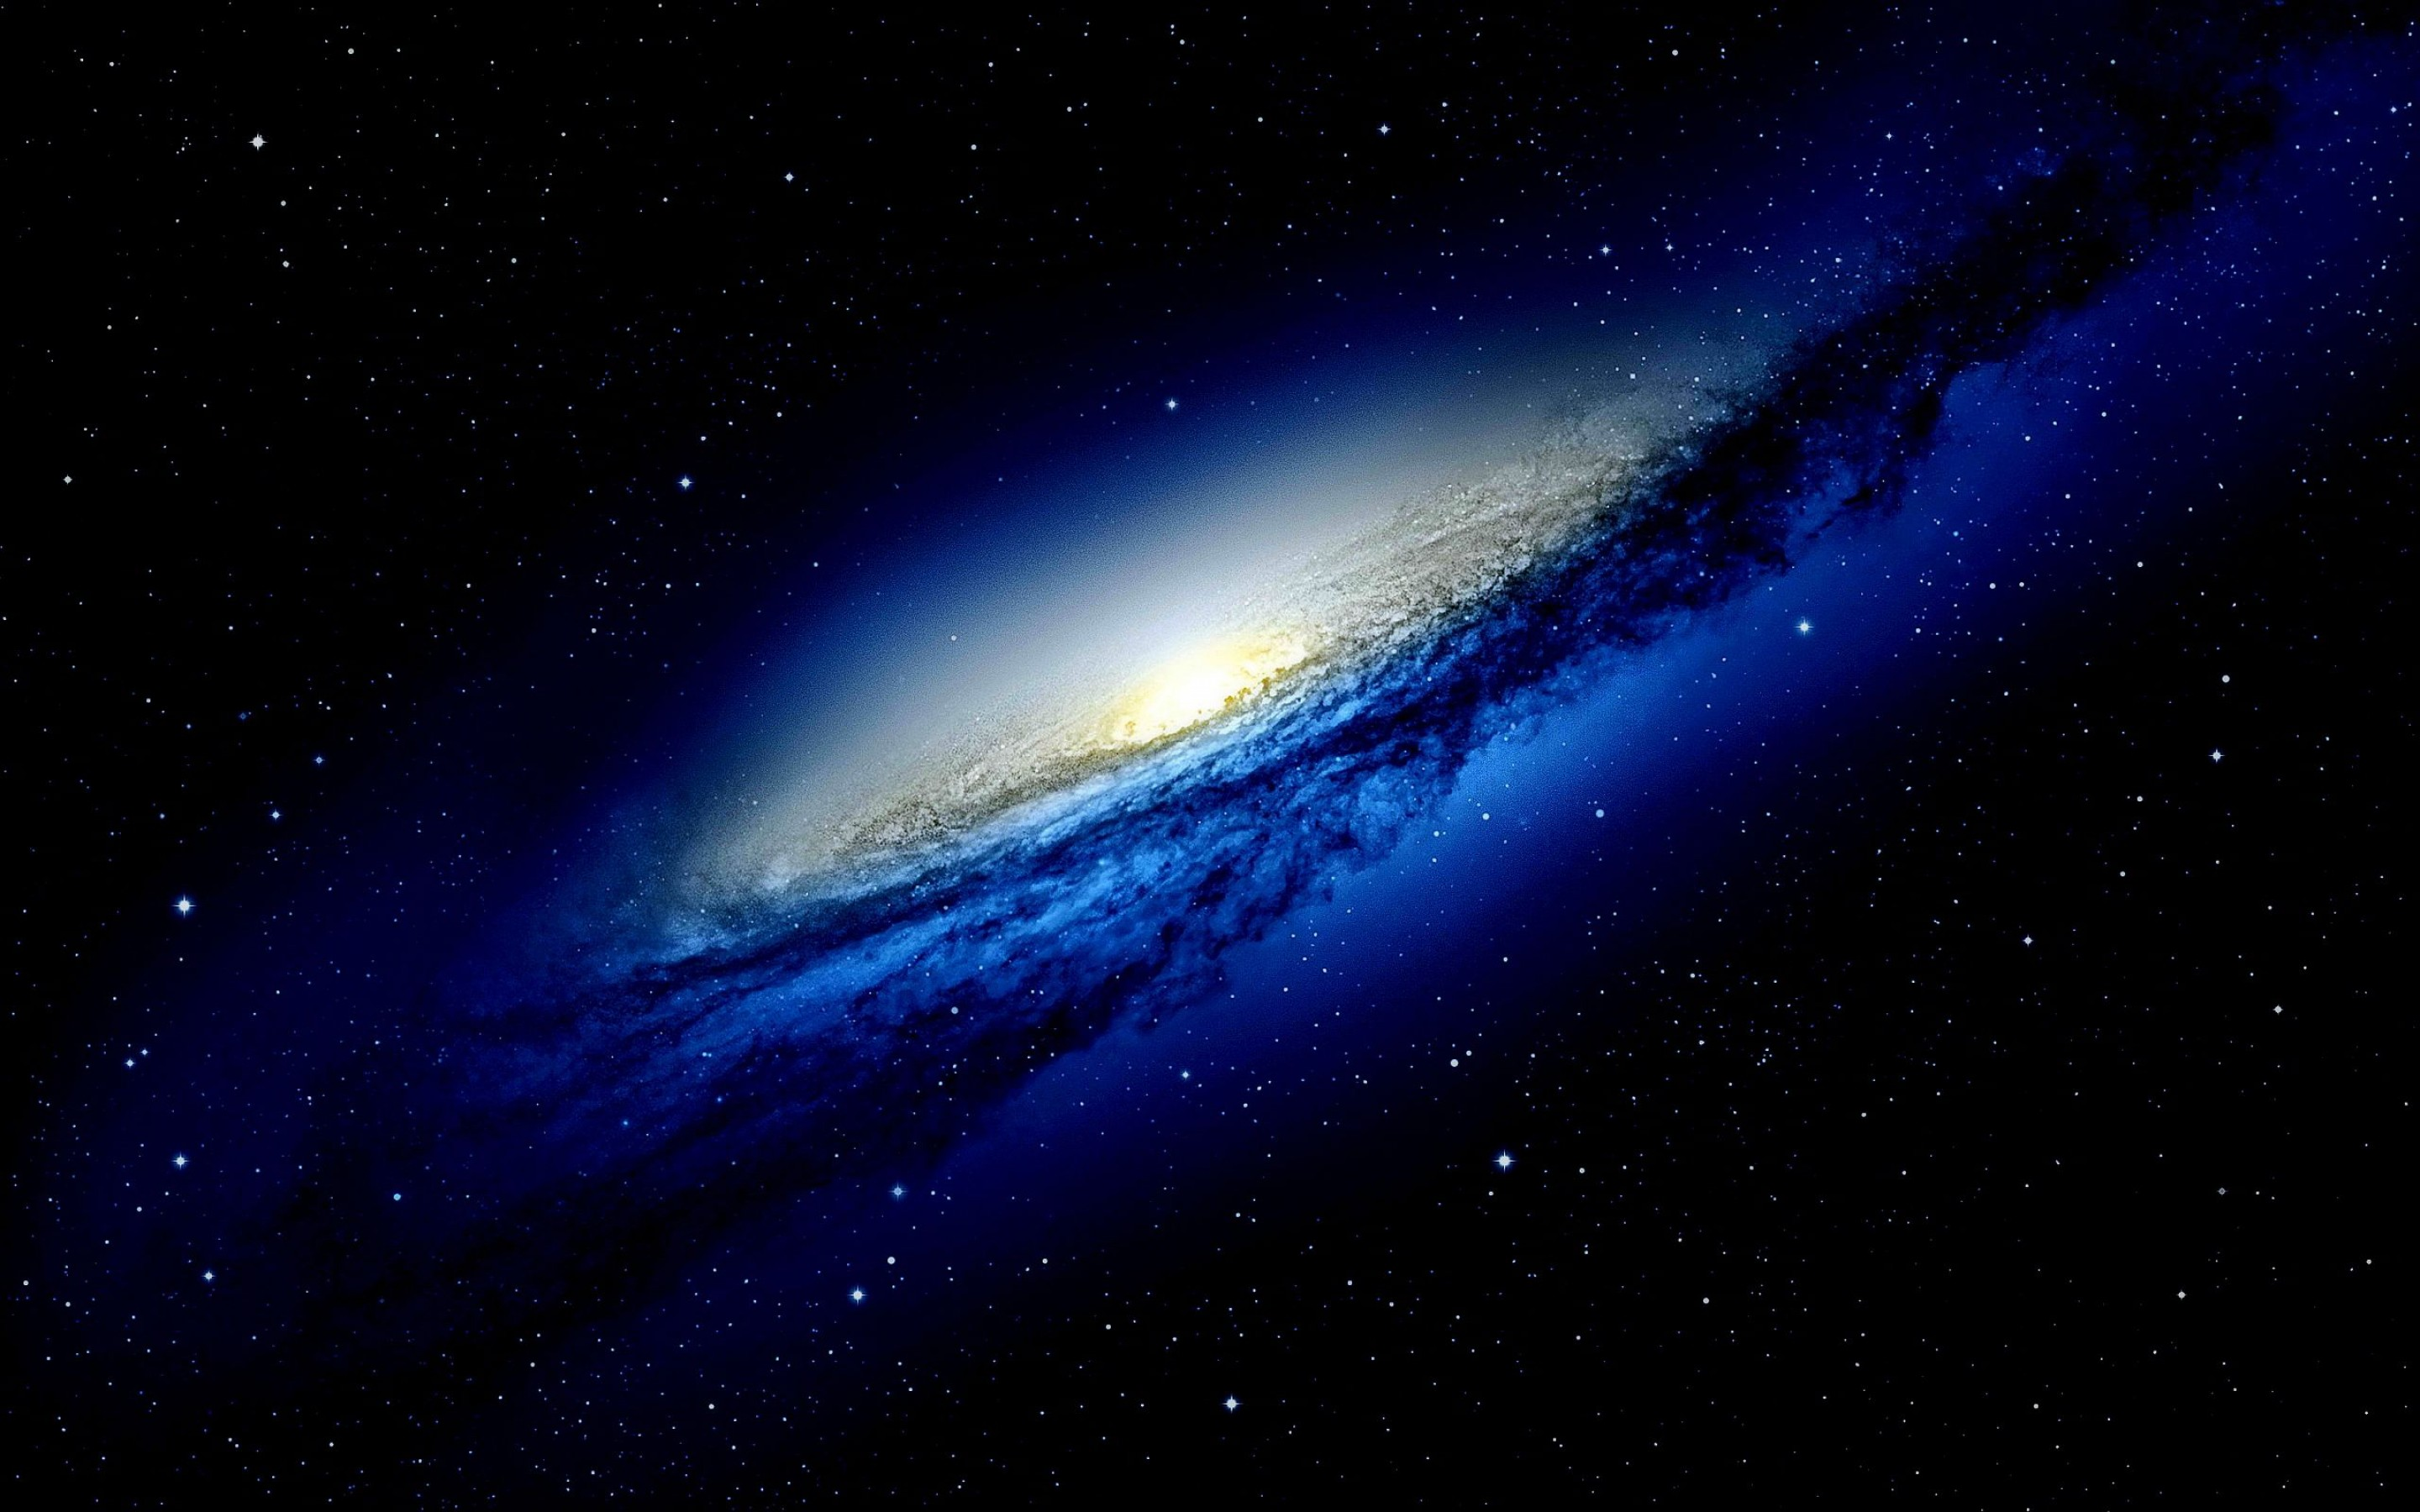 Blue Galaxy HD Wallpaper